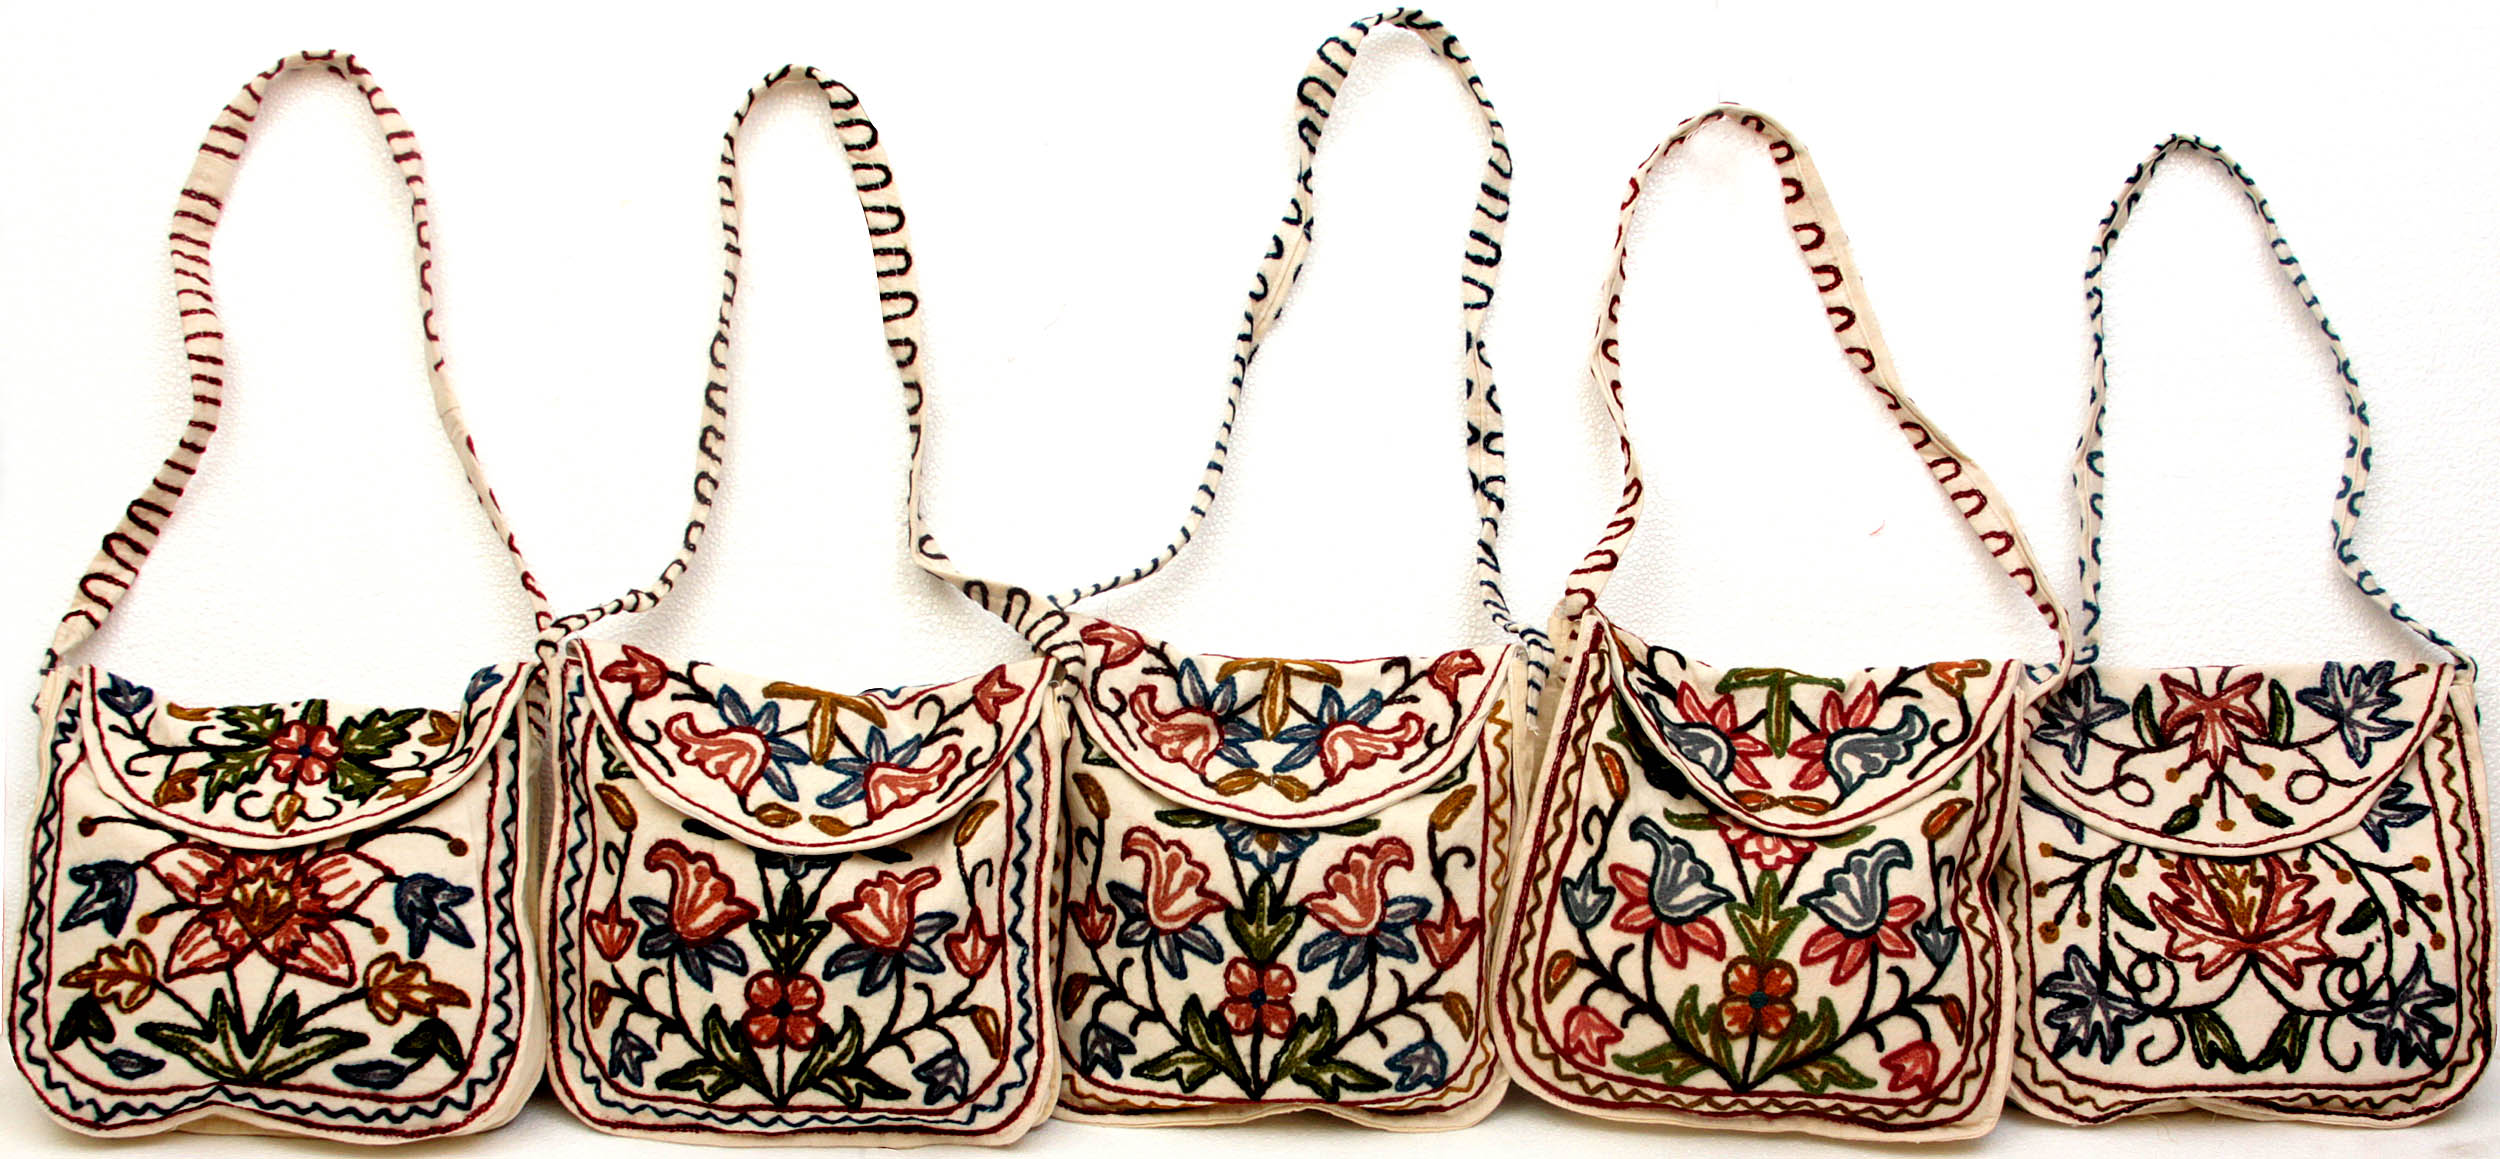 Lot of five flapped handbags with crewel embroidery from